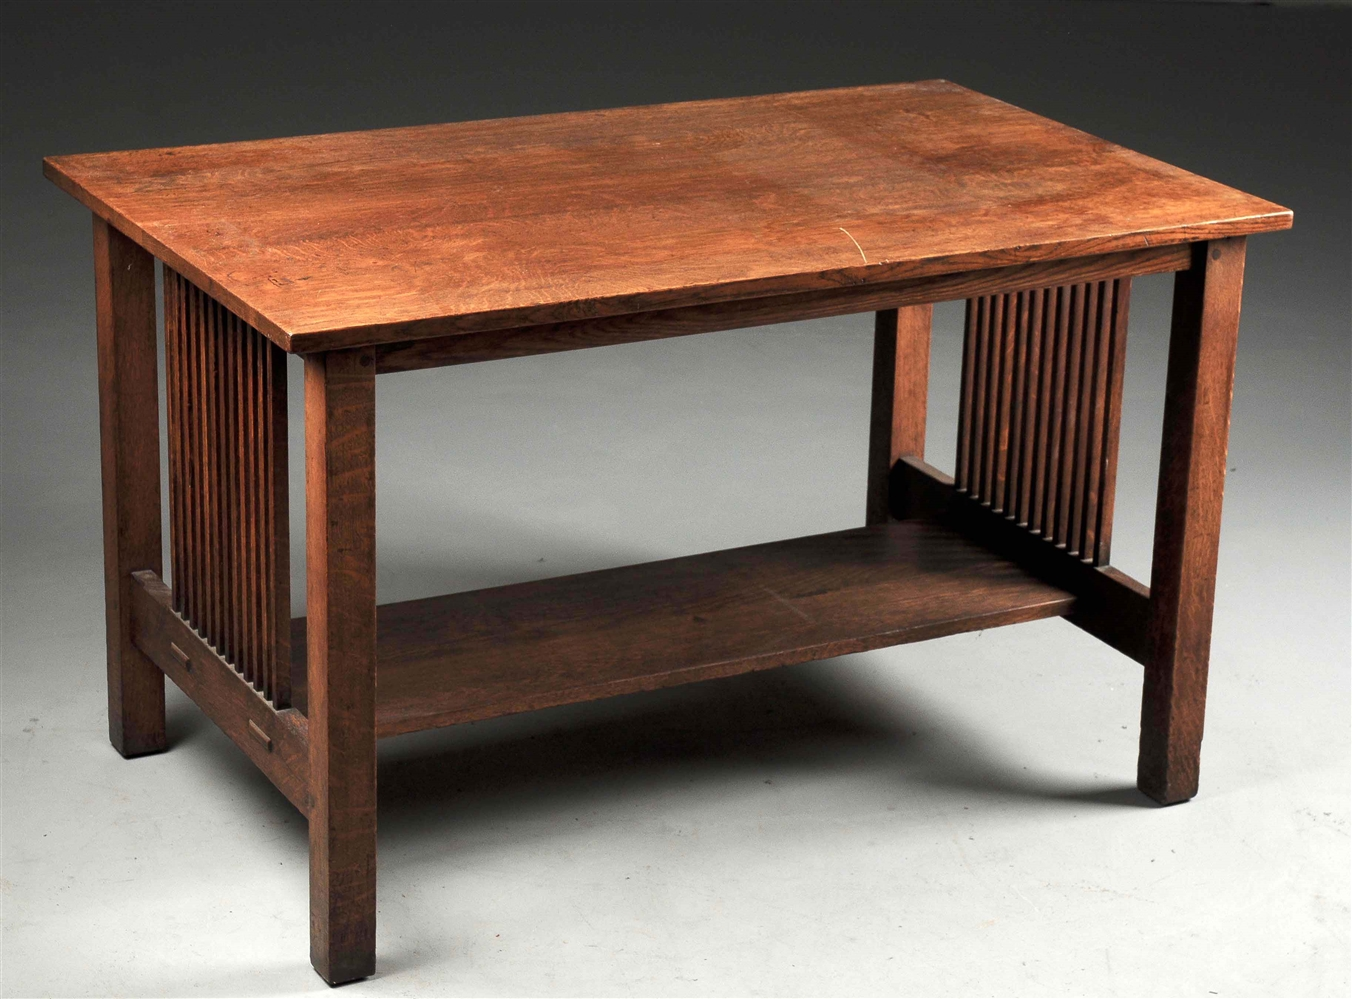 Gustav Stickley Spindle Sided Library Table No. 657.